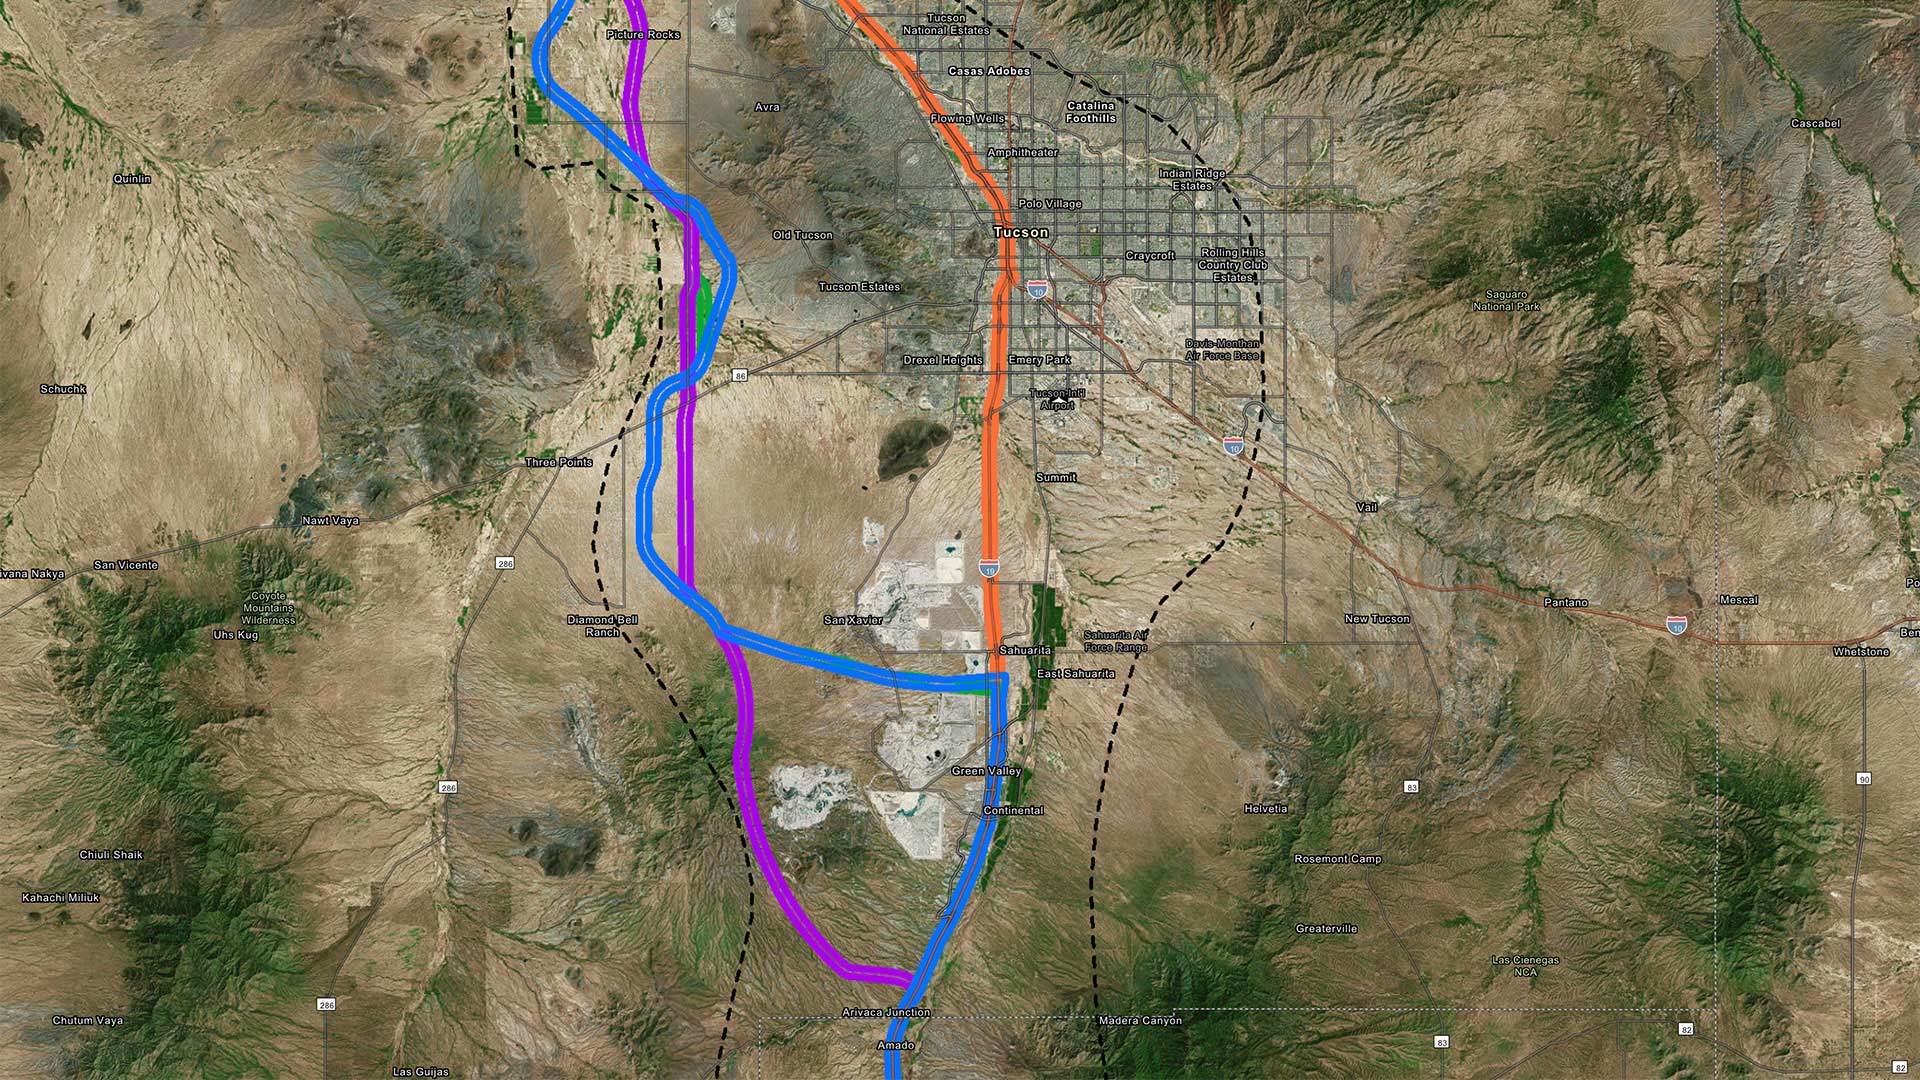 The Arizona Department of Transportation has released its environmental impact statement of the I-11 corridor. ADOT's preferred alternative is shown in blue.